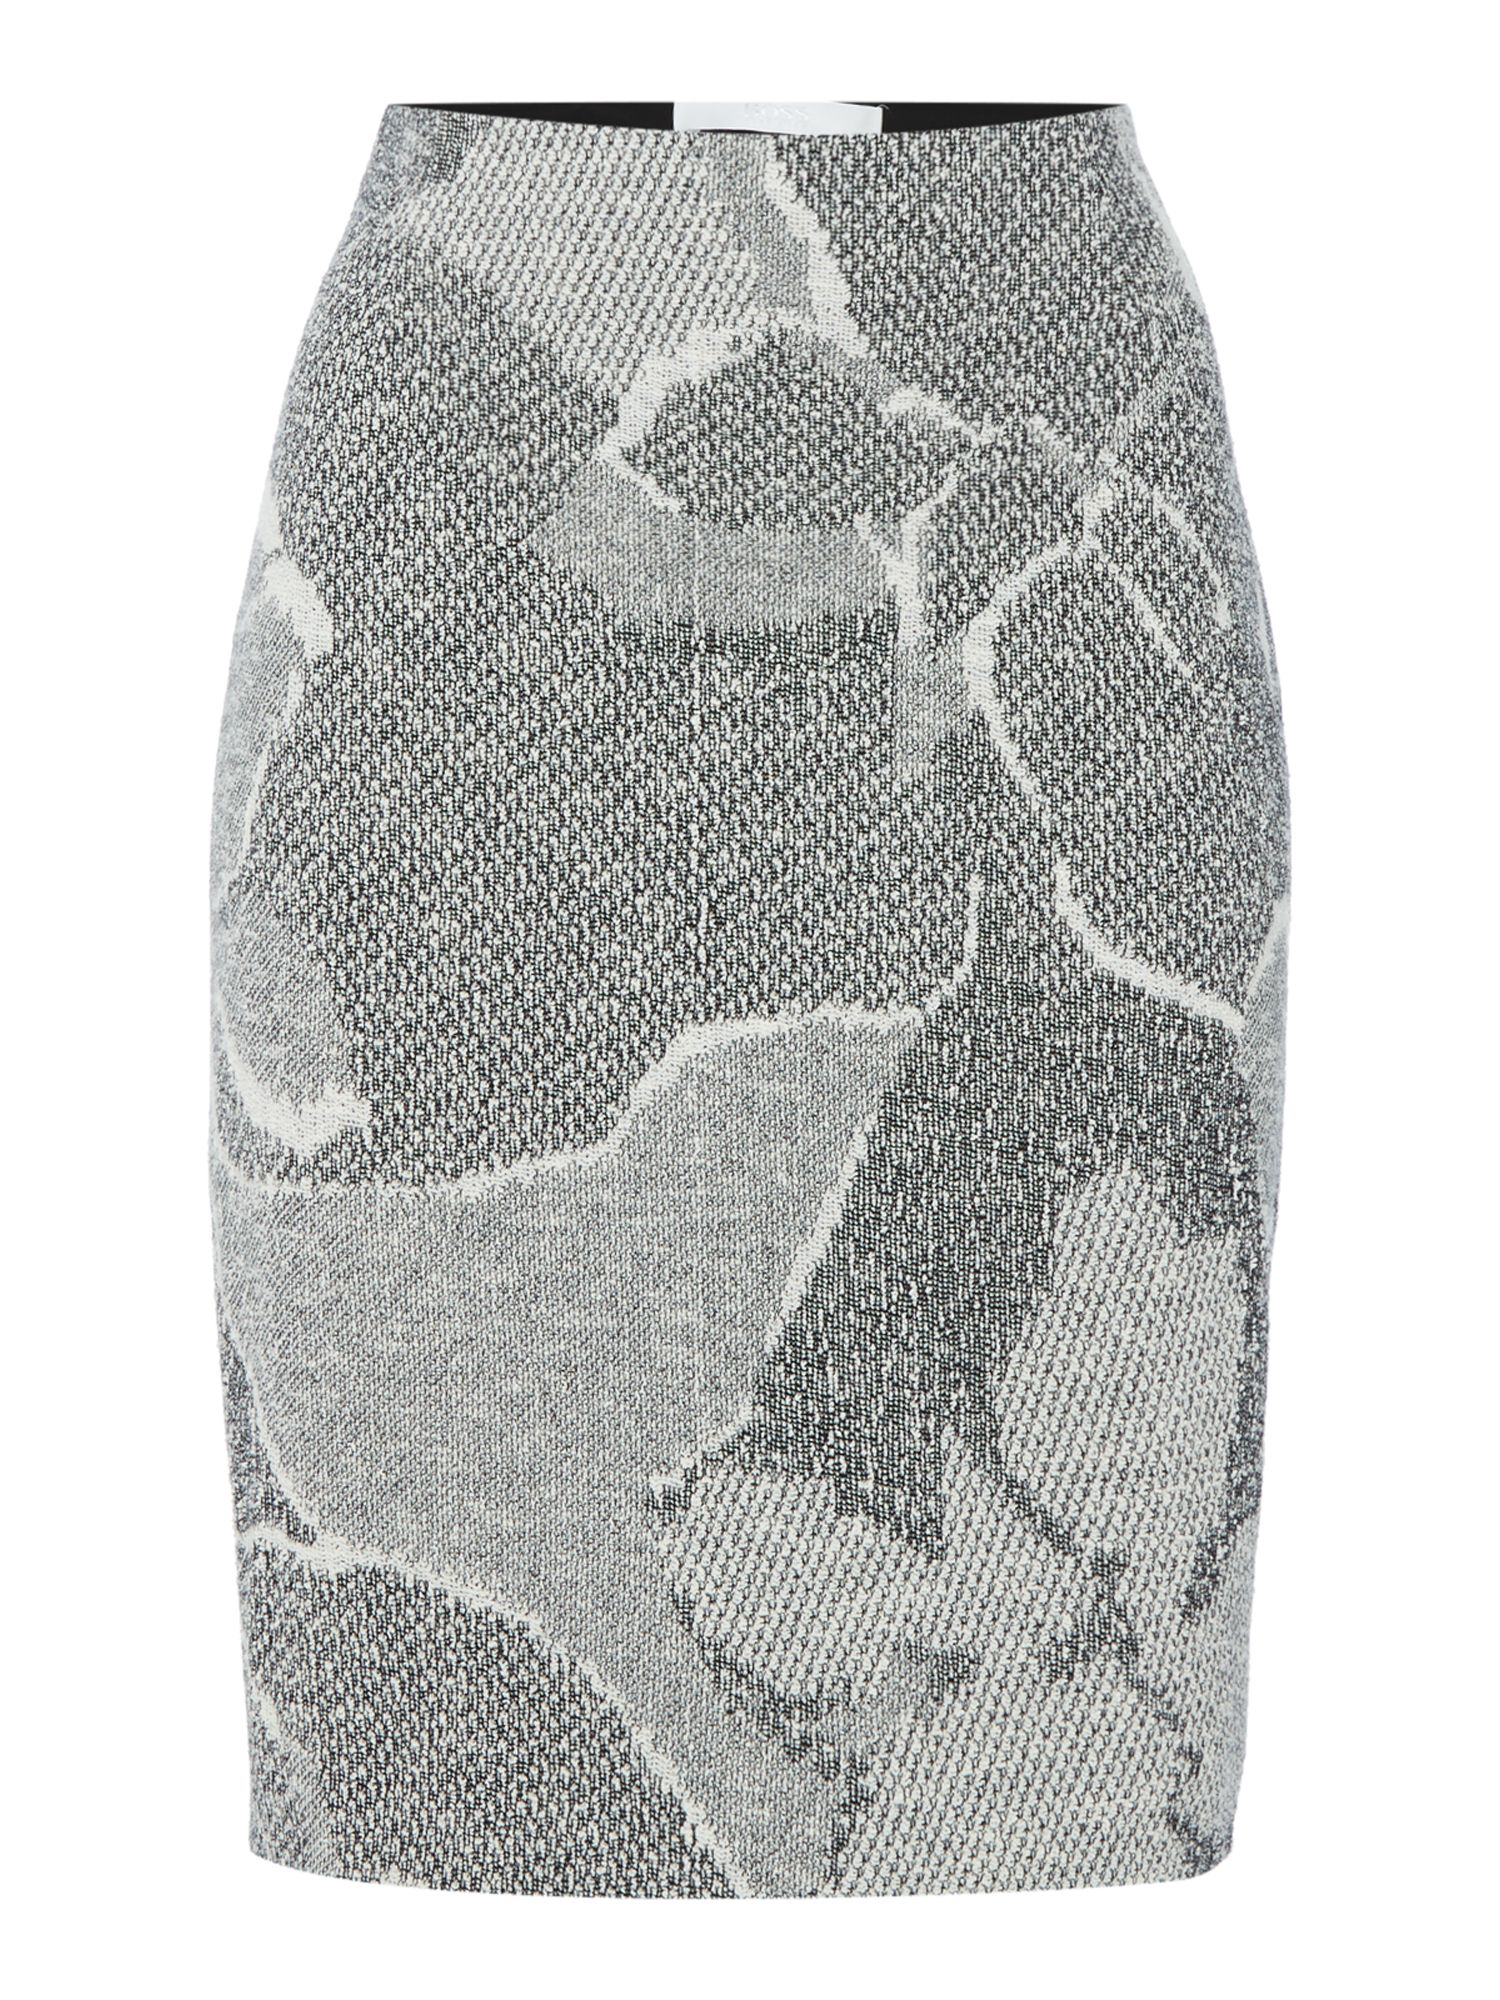 Hugo Boss knitted pencil skirt with floral pattern, Grey